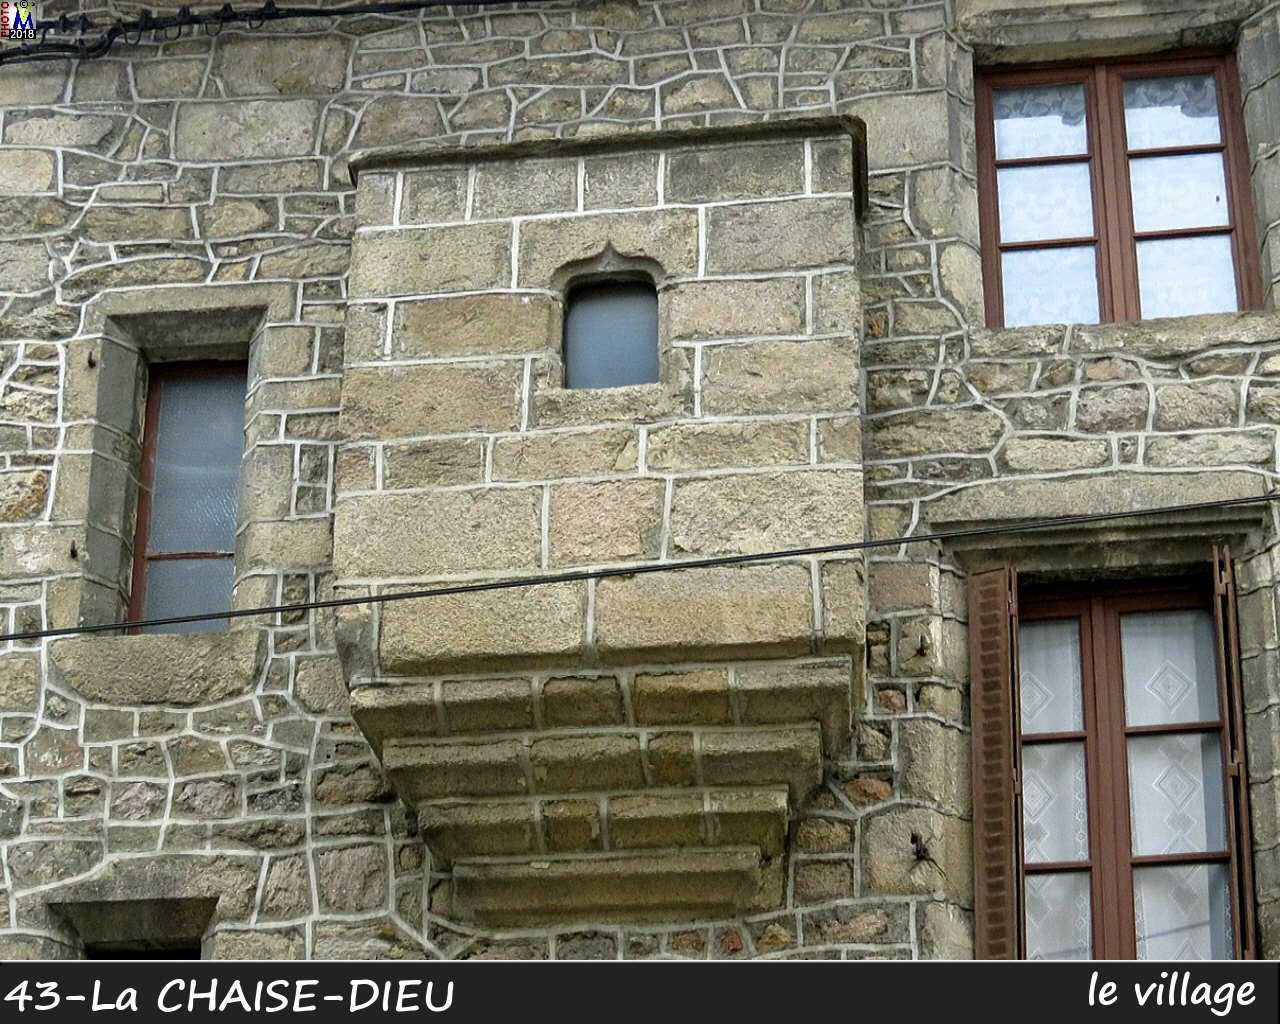 43CHAISE-DIEU_village_146.jpg